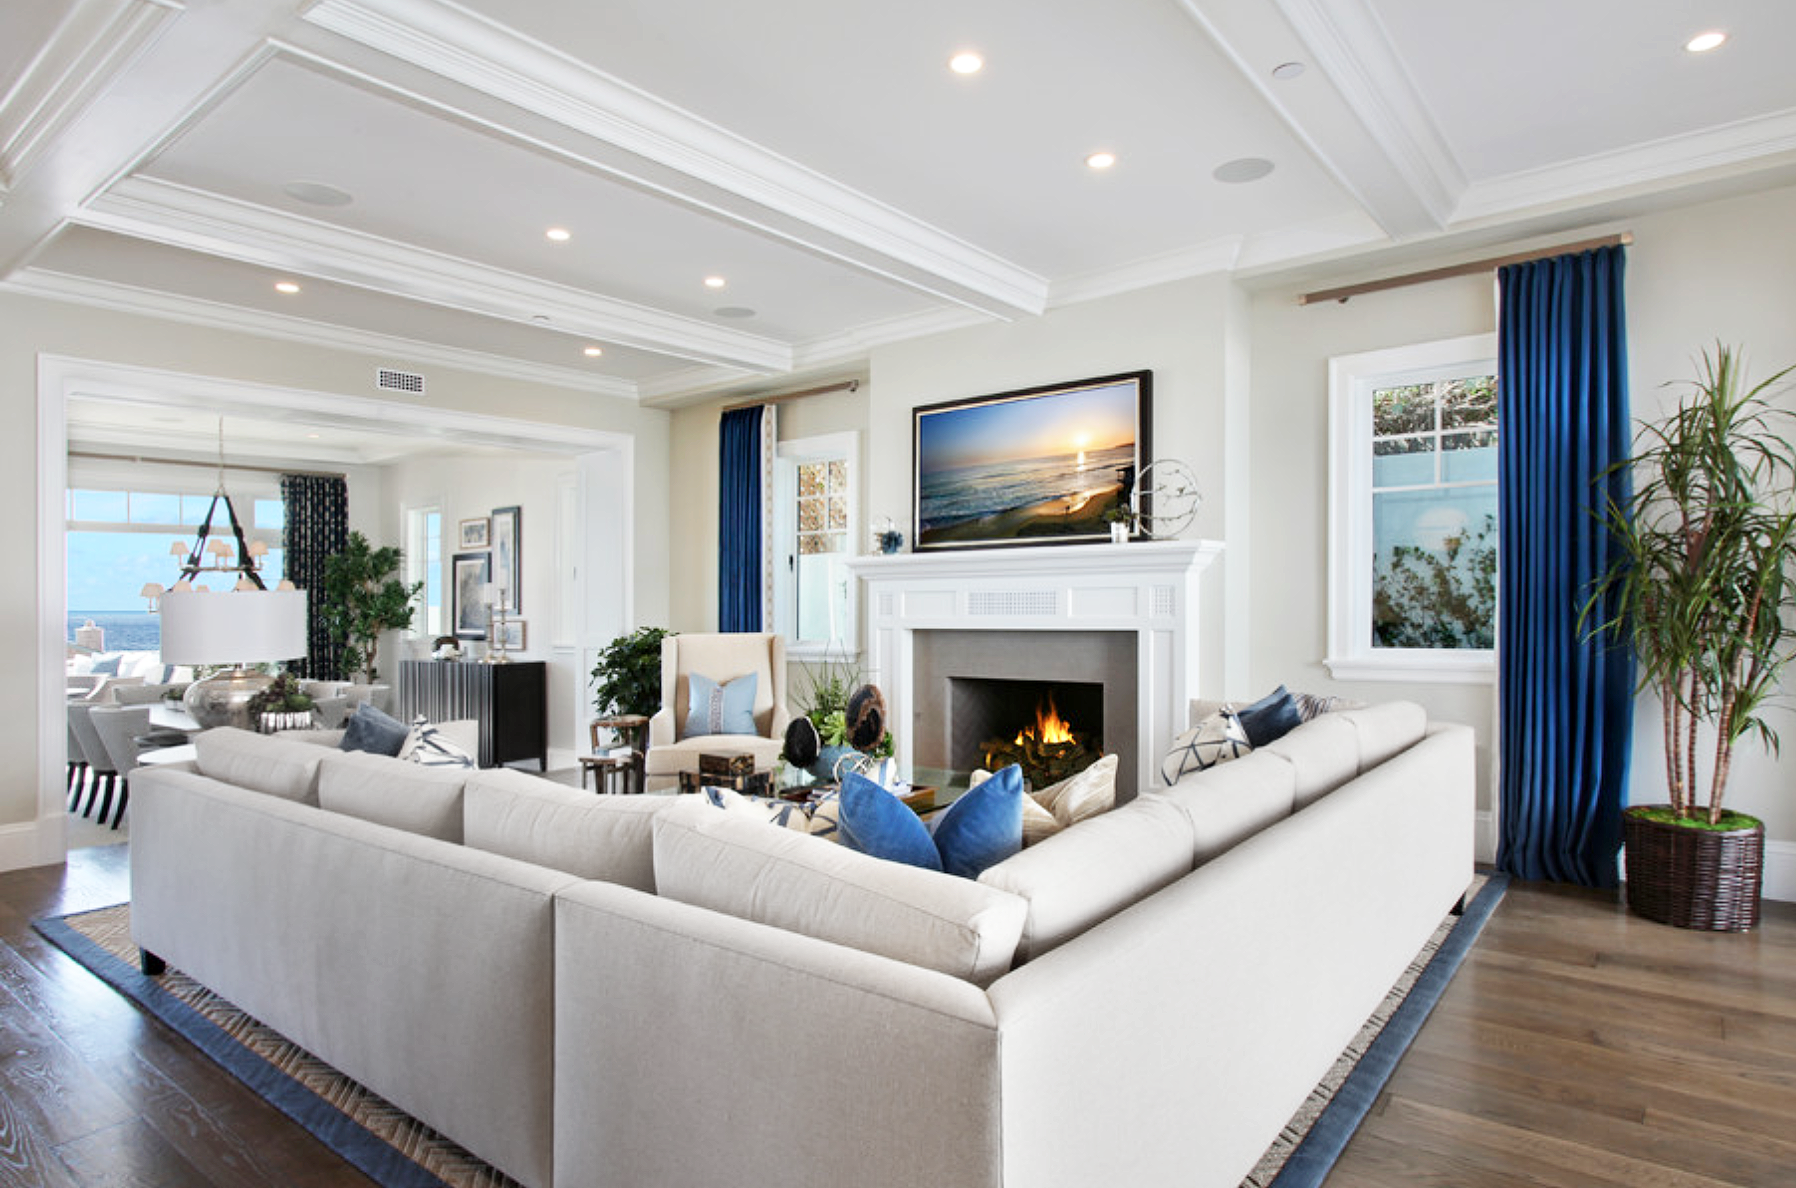 10 Reasons To Love Big Comfy Sectionals Livingroom Layout